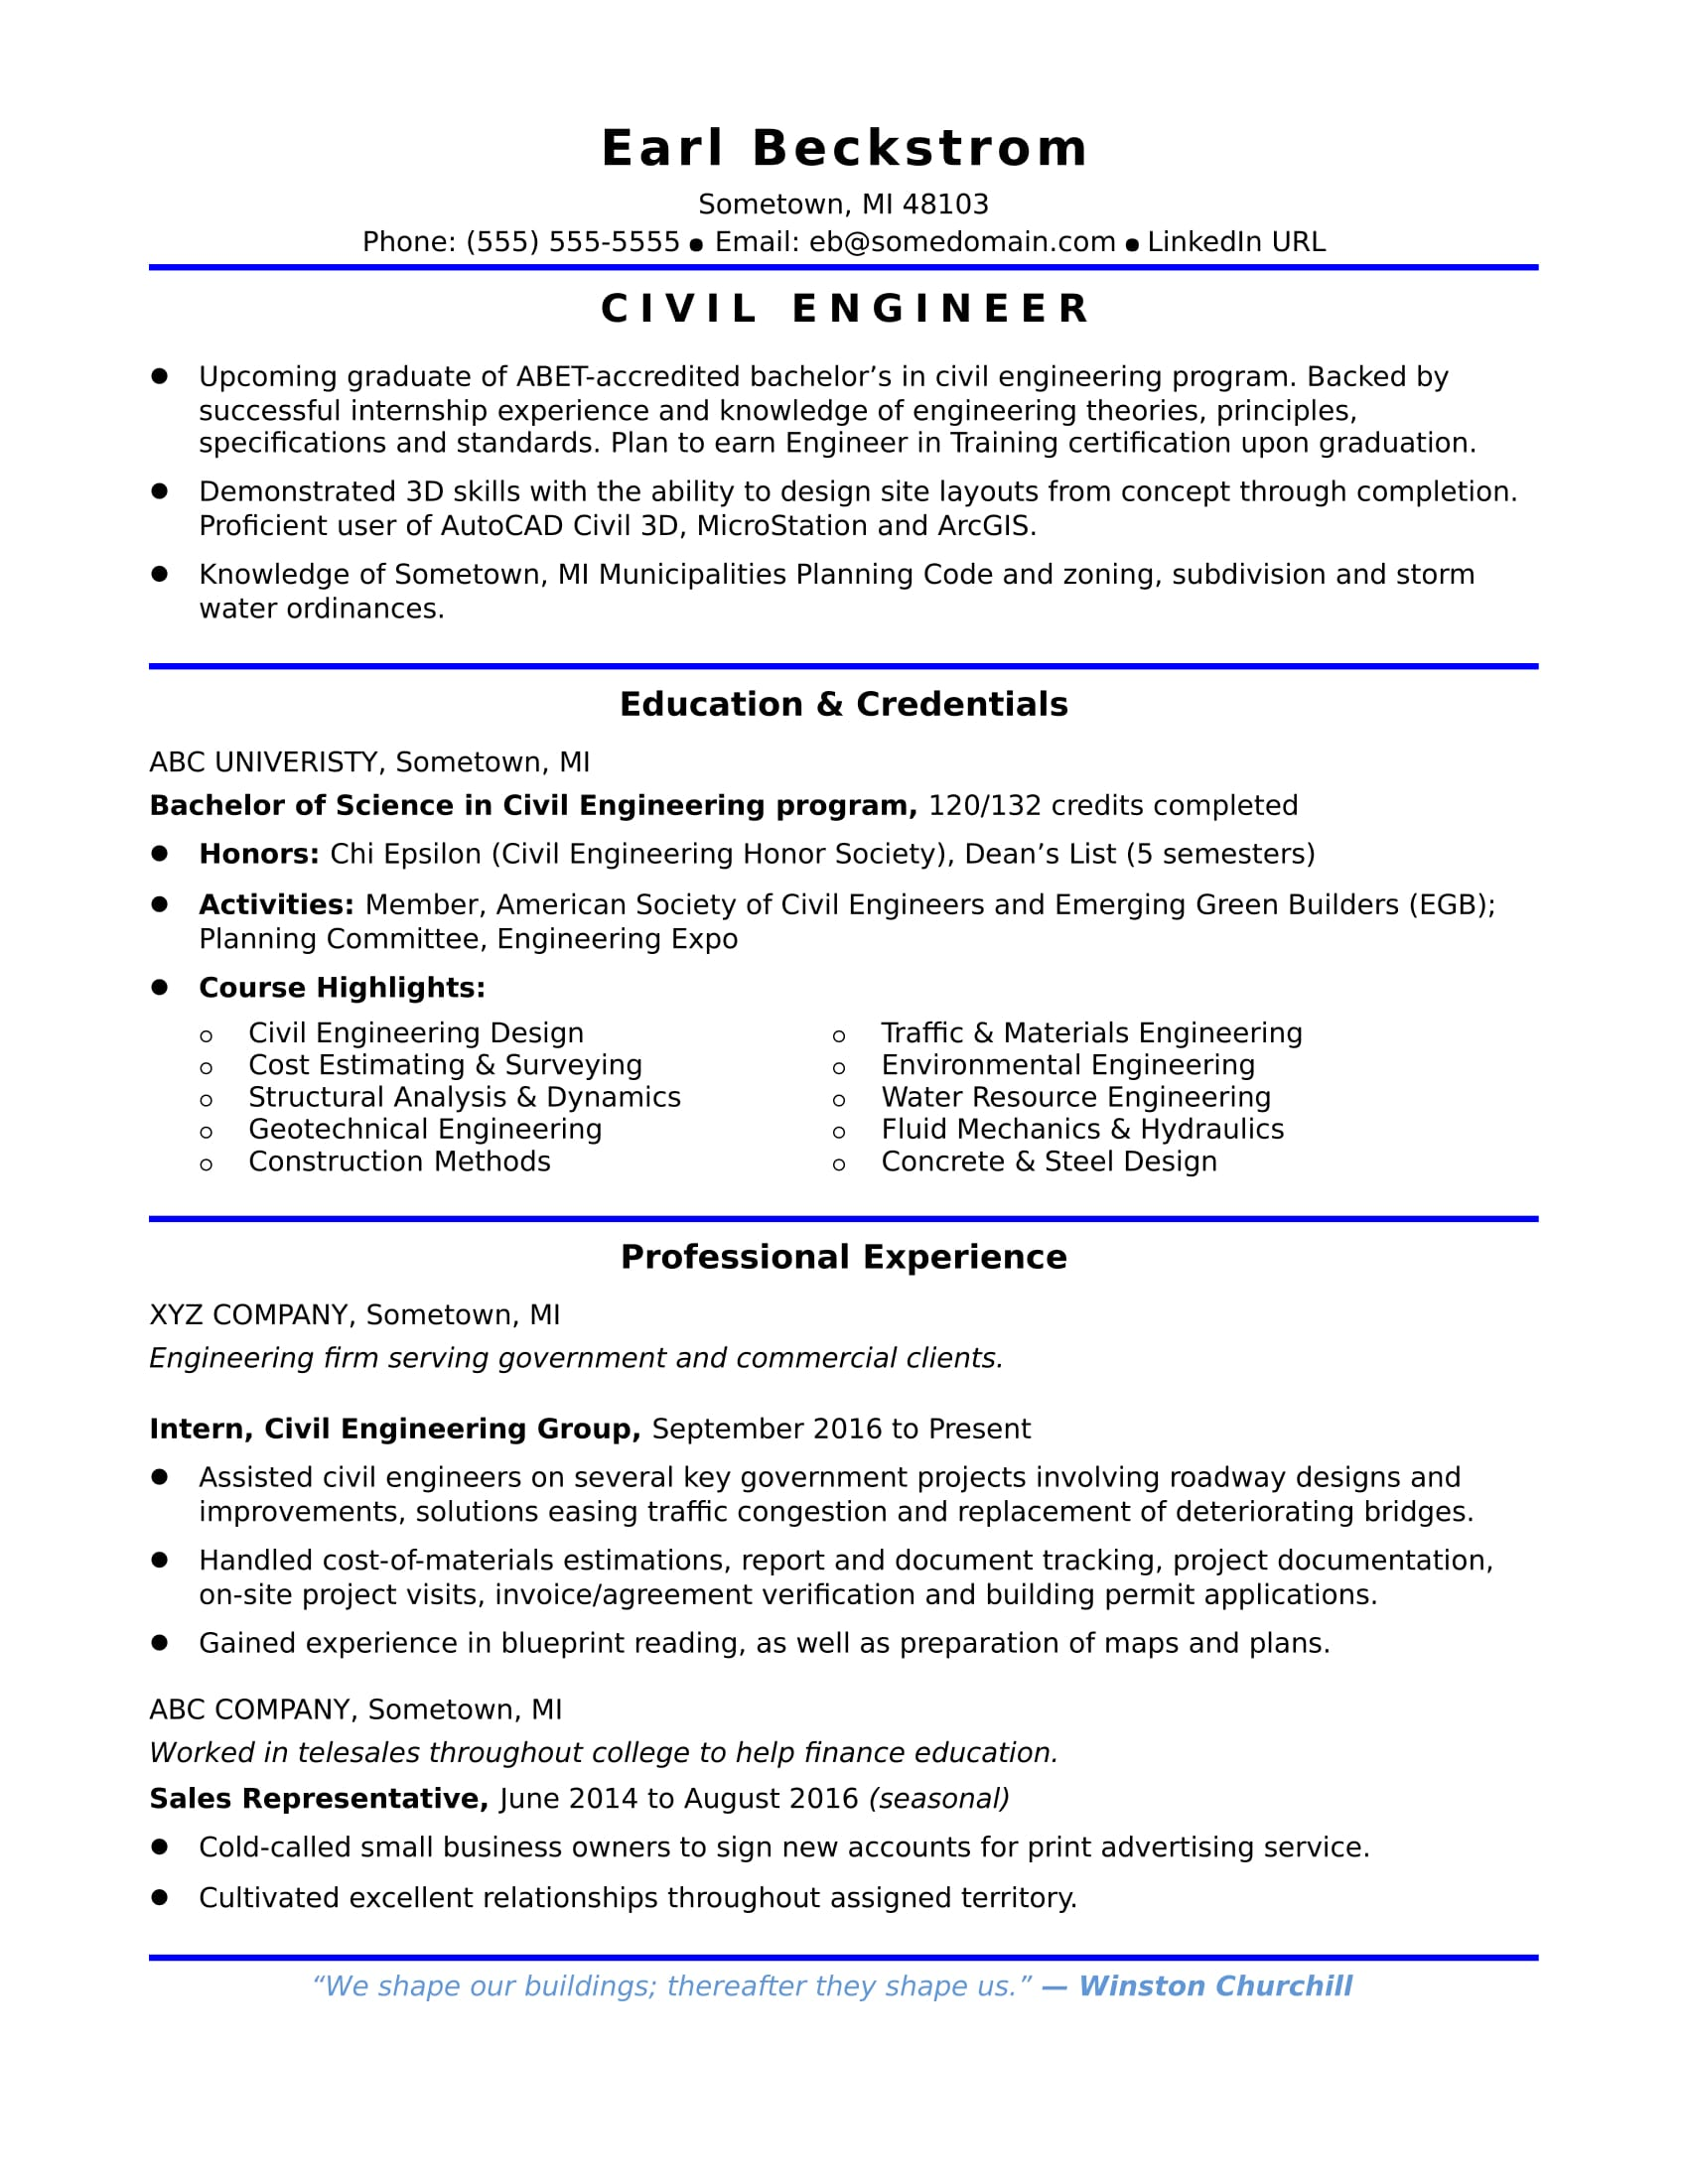 sample resume for an entry level civil engineer - Entry Level Resume Samples